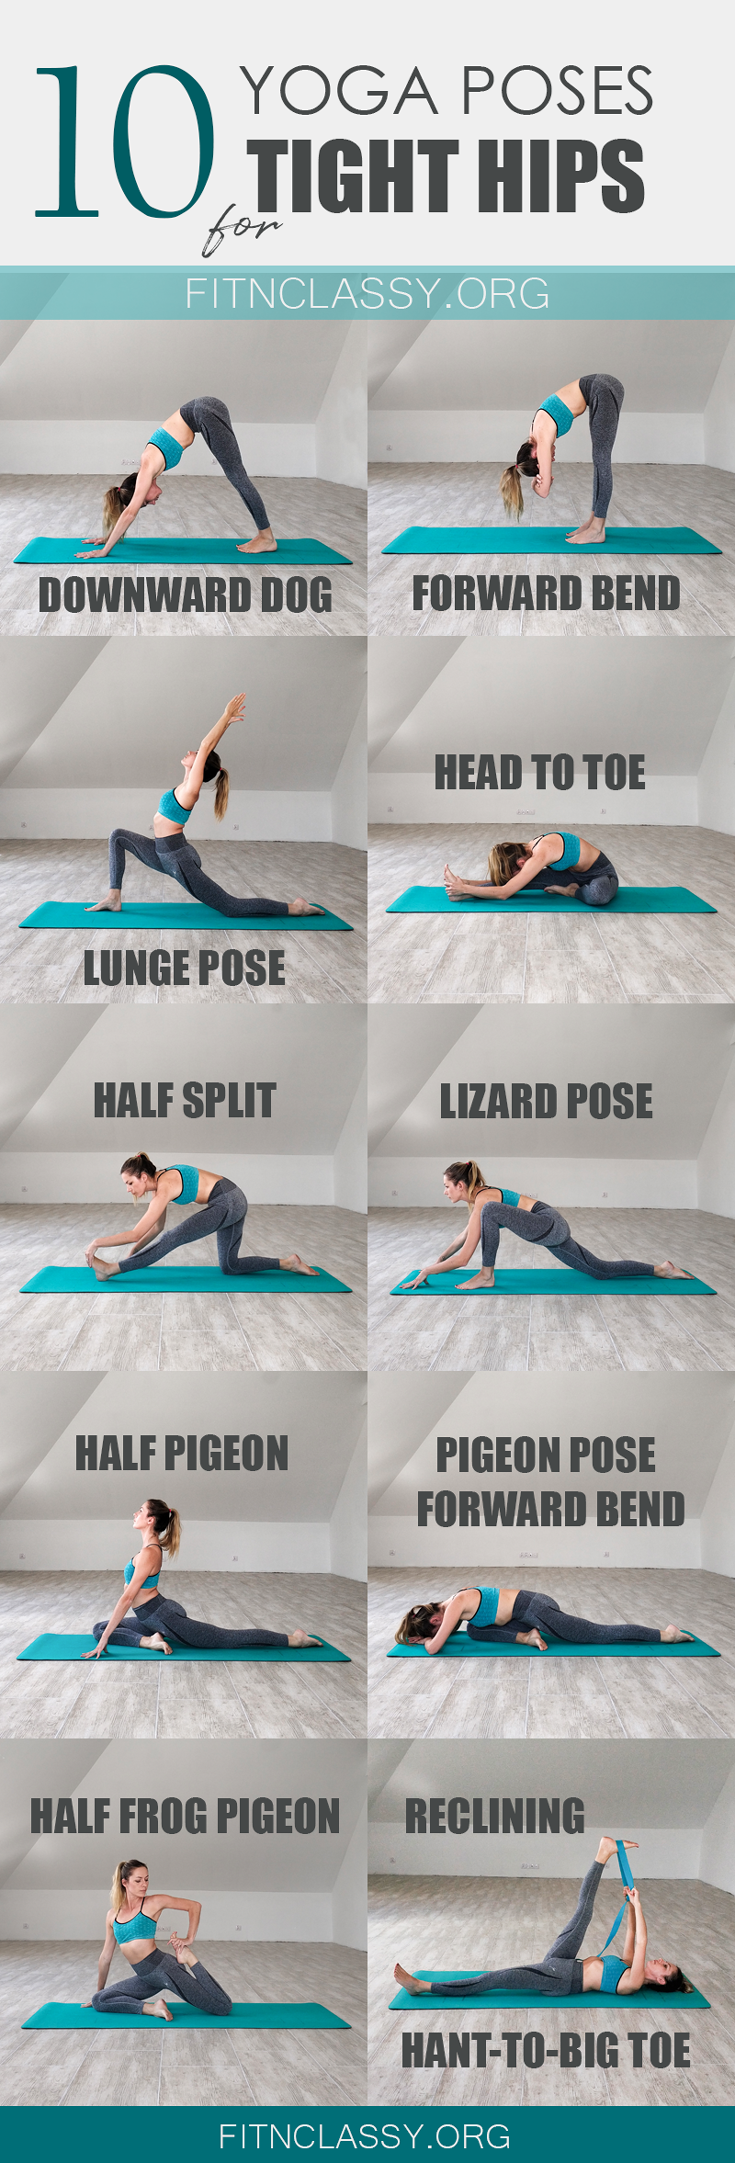 10 Yoga Poses For Tight Hips & Hamstrings - Fit & Classy